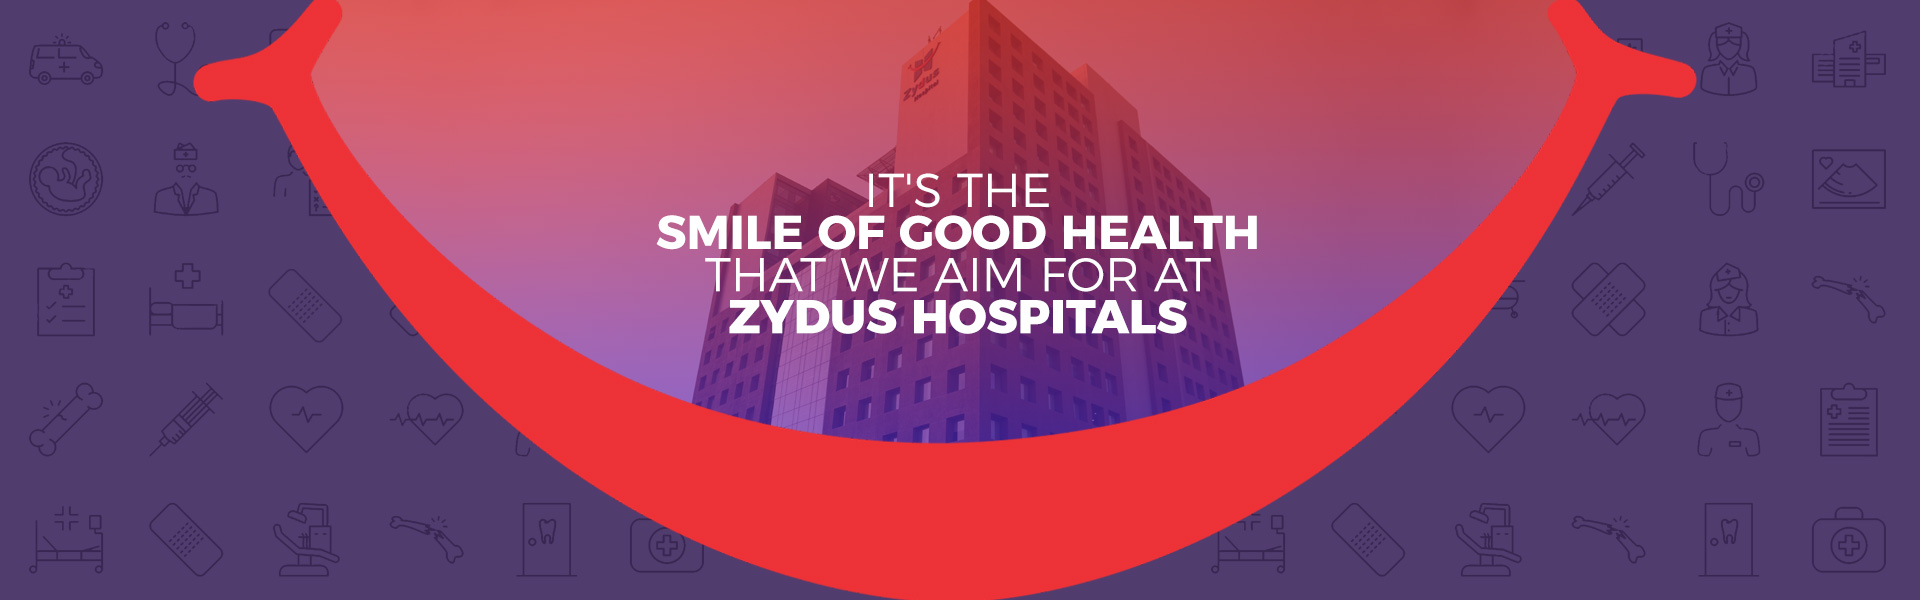 Zydus Hospitals Top 10 Surgeons in India Surgical Gastroenterology in India Top 10 Hospitals for Joint Replacement Top 10 Hospitals for Hip Replacement Joint Replacement in Ahmedabad 24 Hours Ambulance Top 10 Neurosurgery Hospitals in India Top 10 Hospitals for Gastroenterology Dentists in Ahmedabad